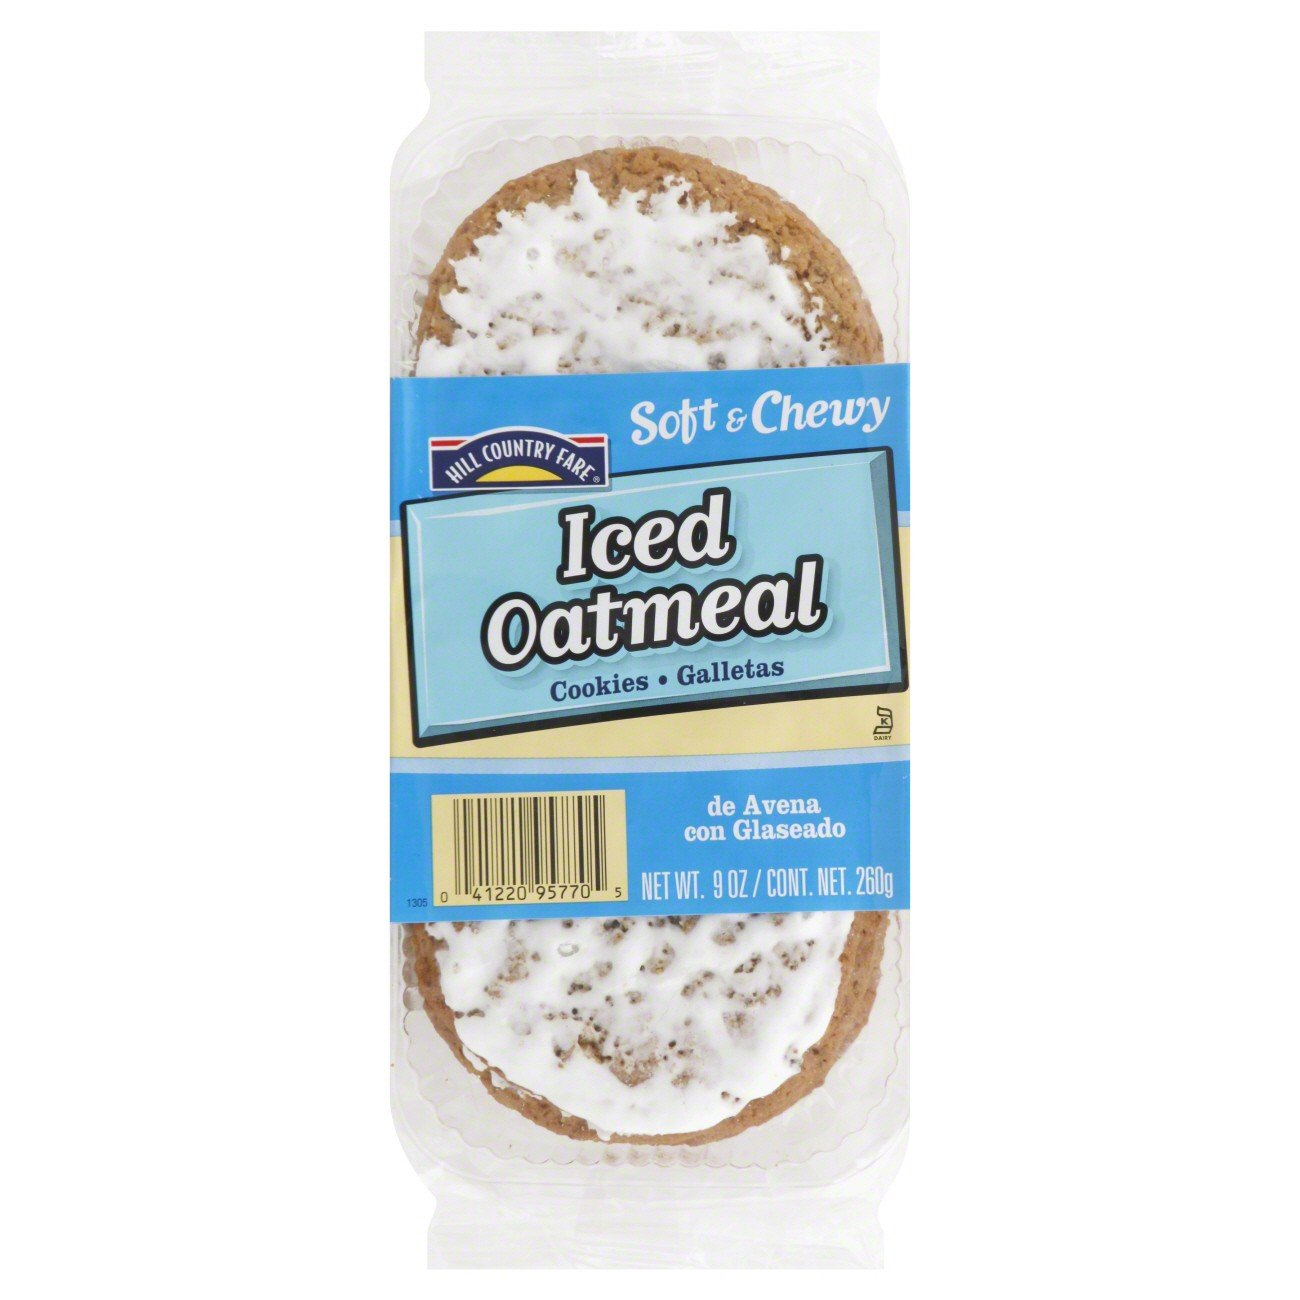 Amazon.com: Country Fare Soft & Chewy Iced Oatmeal Cookies 5/9oz (Pack of 4) + Trident Go Cup Peppermint and Spearmint 1/60 Count(BUNDLE)